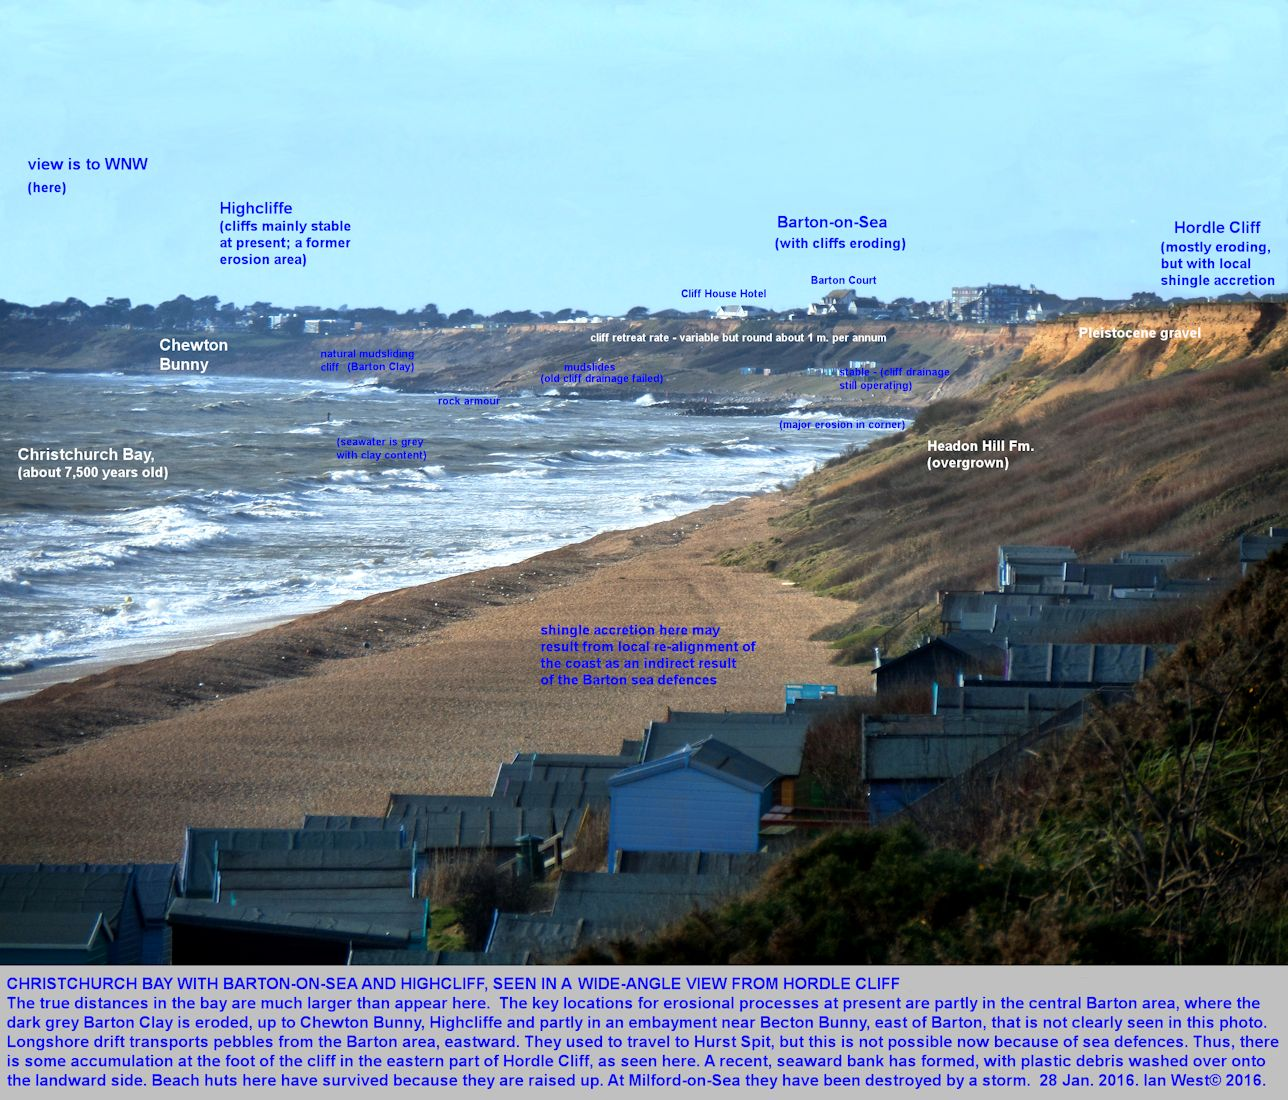 A wide-angle view, westward, of Christchurch Bay, including Barton-on-Sea, from the eastern part of Hordle Cliff, Milford-on-Sea; the image has visual compression and distances are greater than they appear